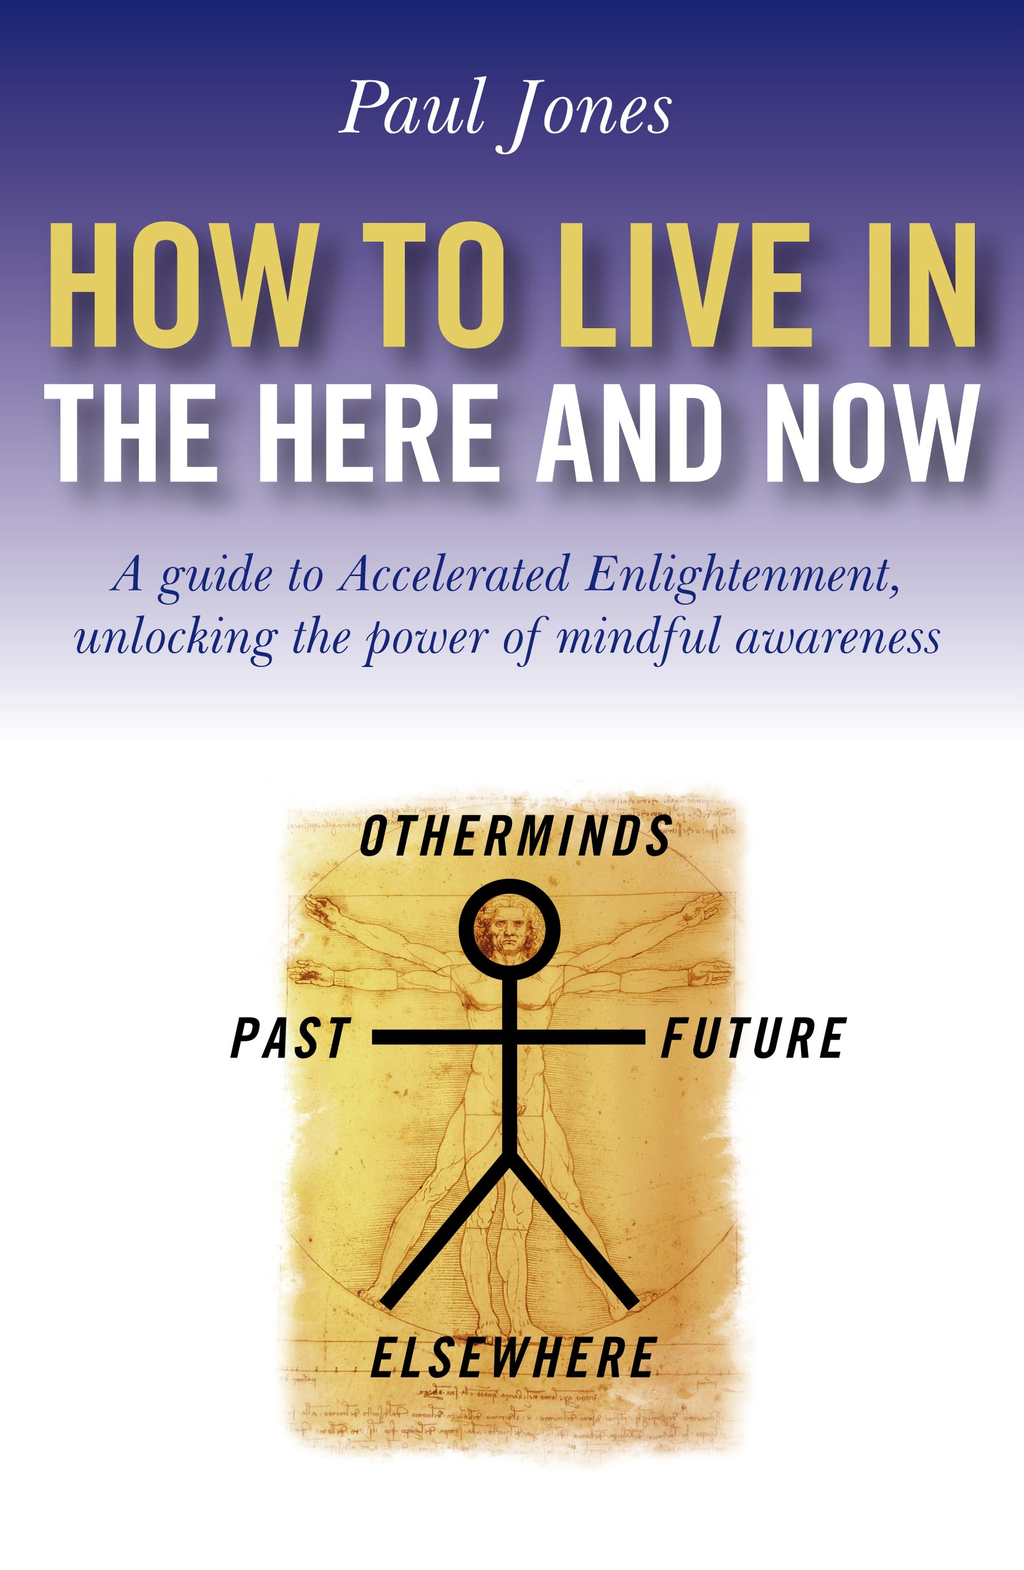 How To Live In The Here And Now By: Paul Jones